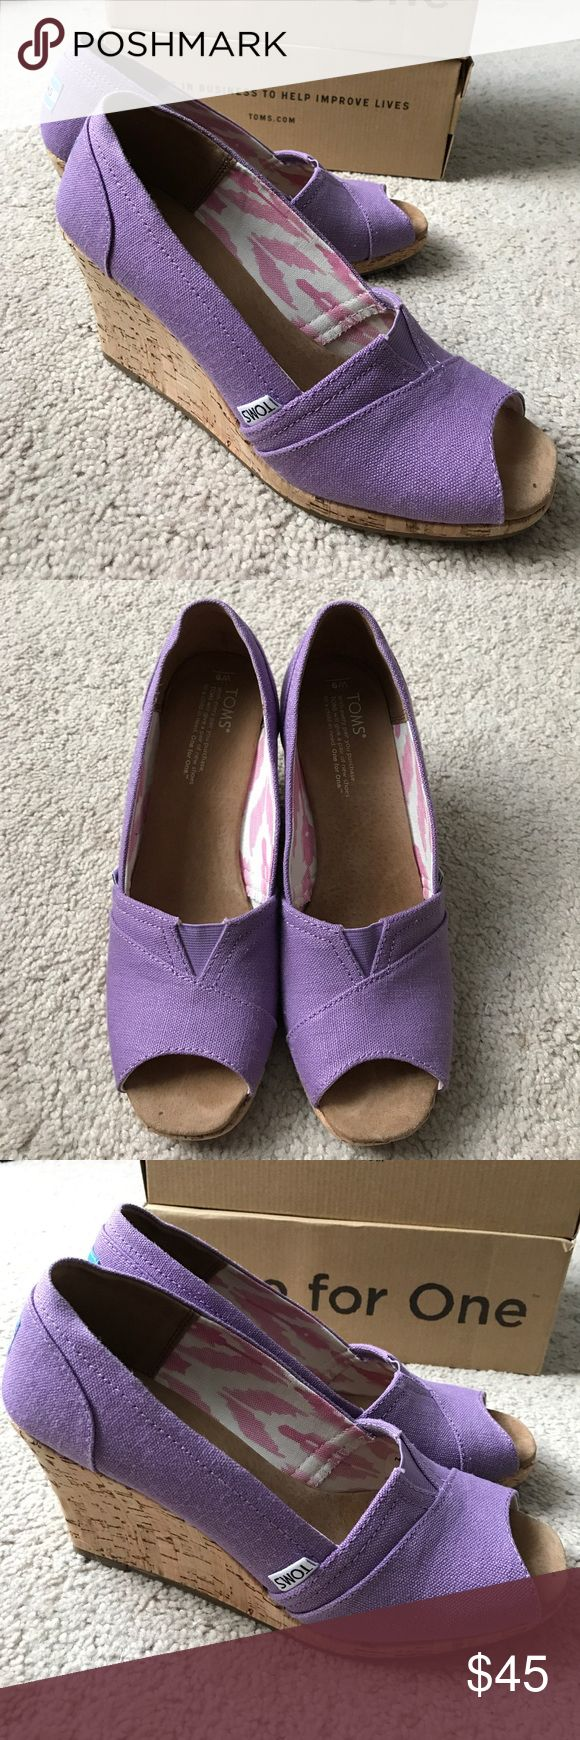 Toms Wedges Ladies Toms Wedges, size 9. Orchid purple hemp. Excellent condition- nearly new!! TOMS Shoes Wedges